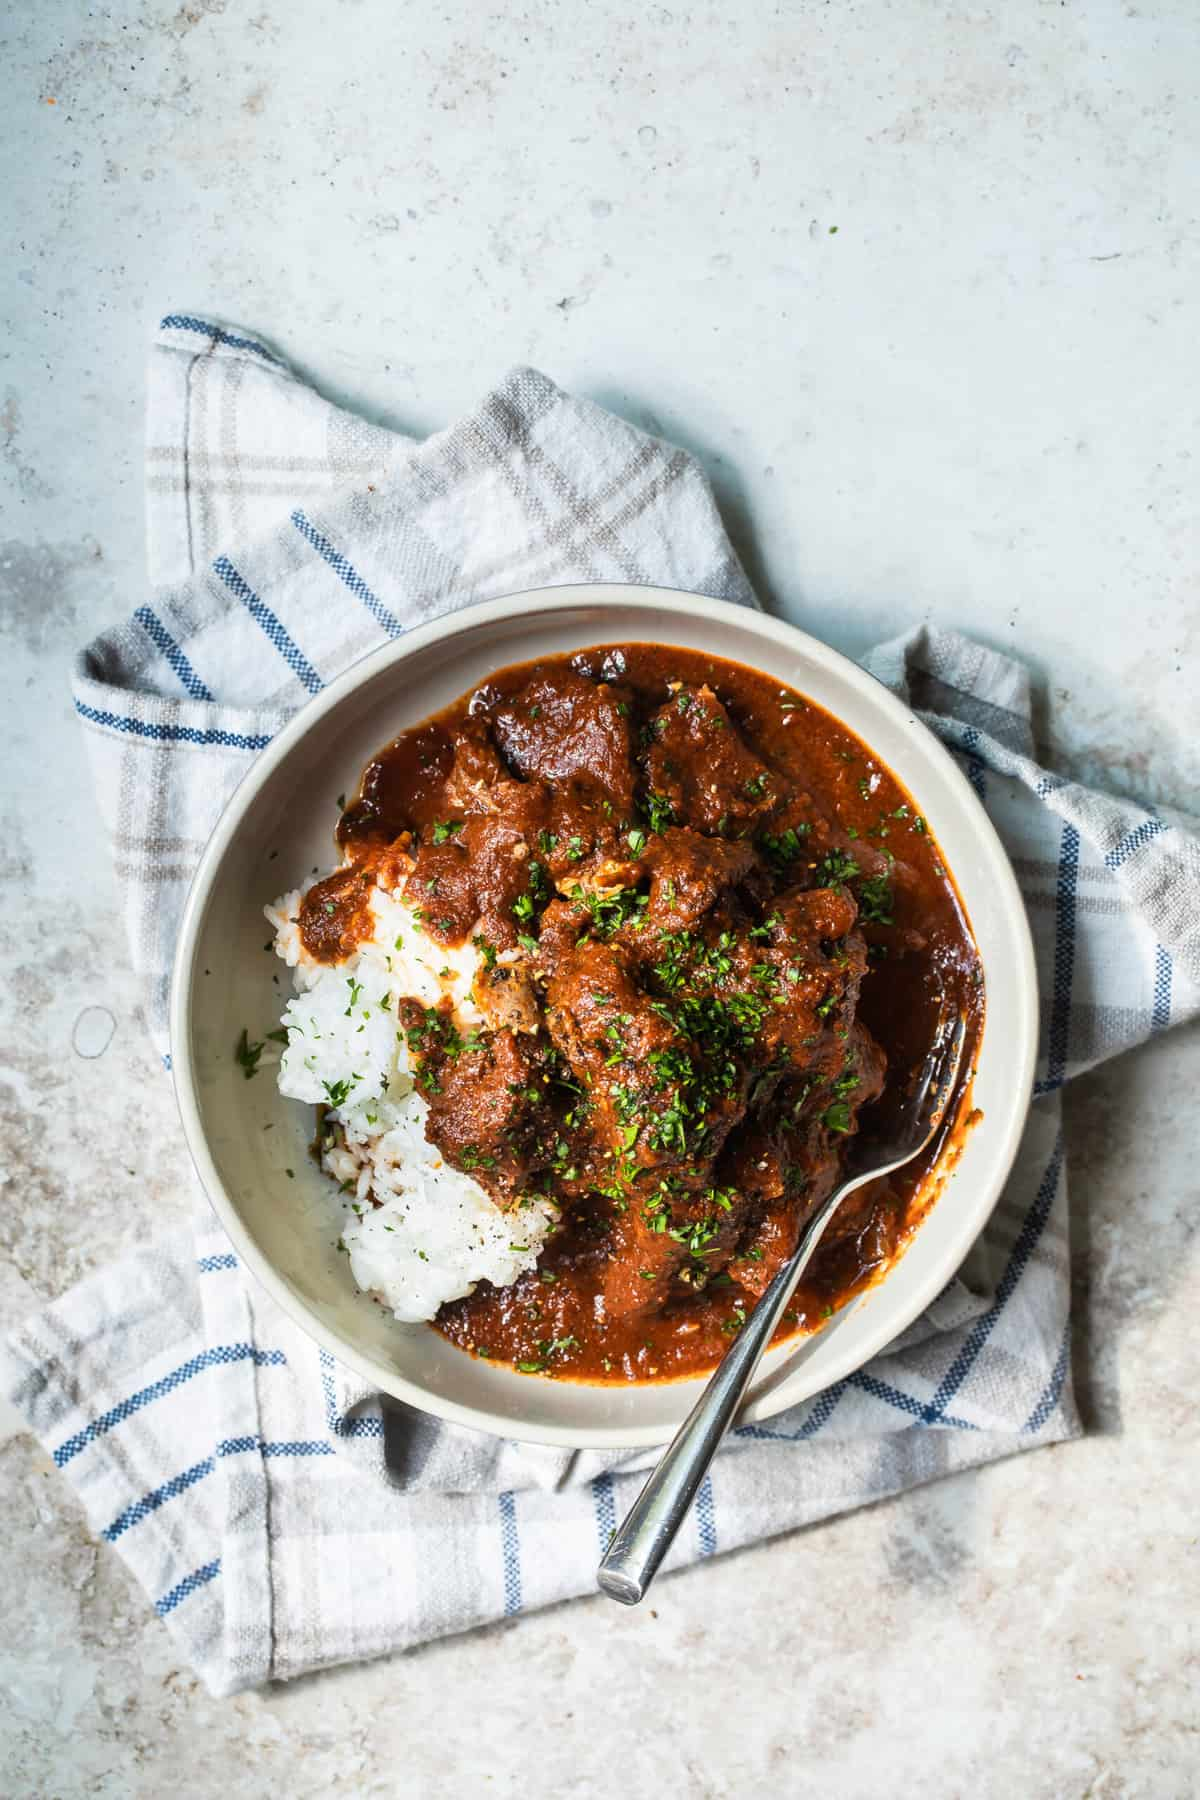 lamb birria in a bowl with rice